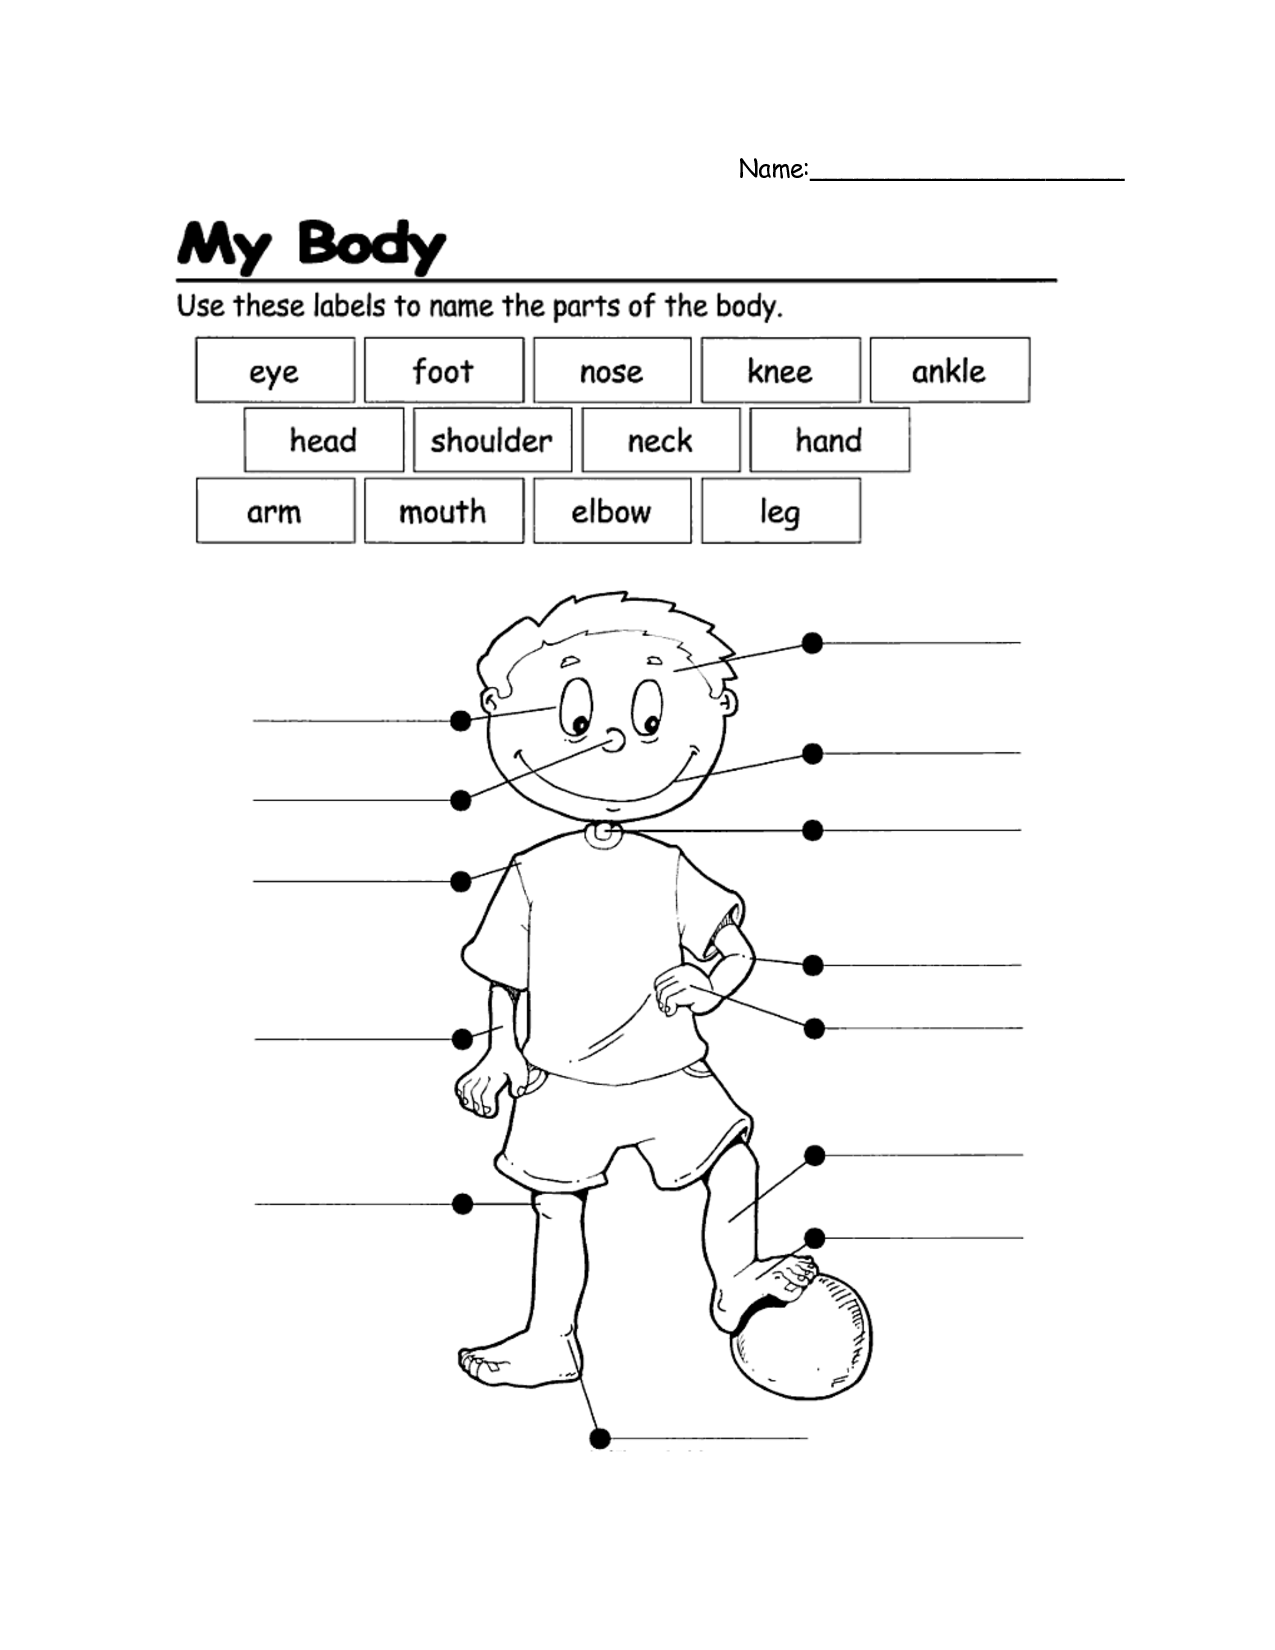 21 Awesome label the parts of the body worksheet for kids – Human Body Worksheet